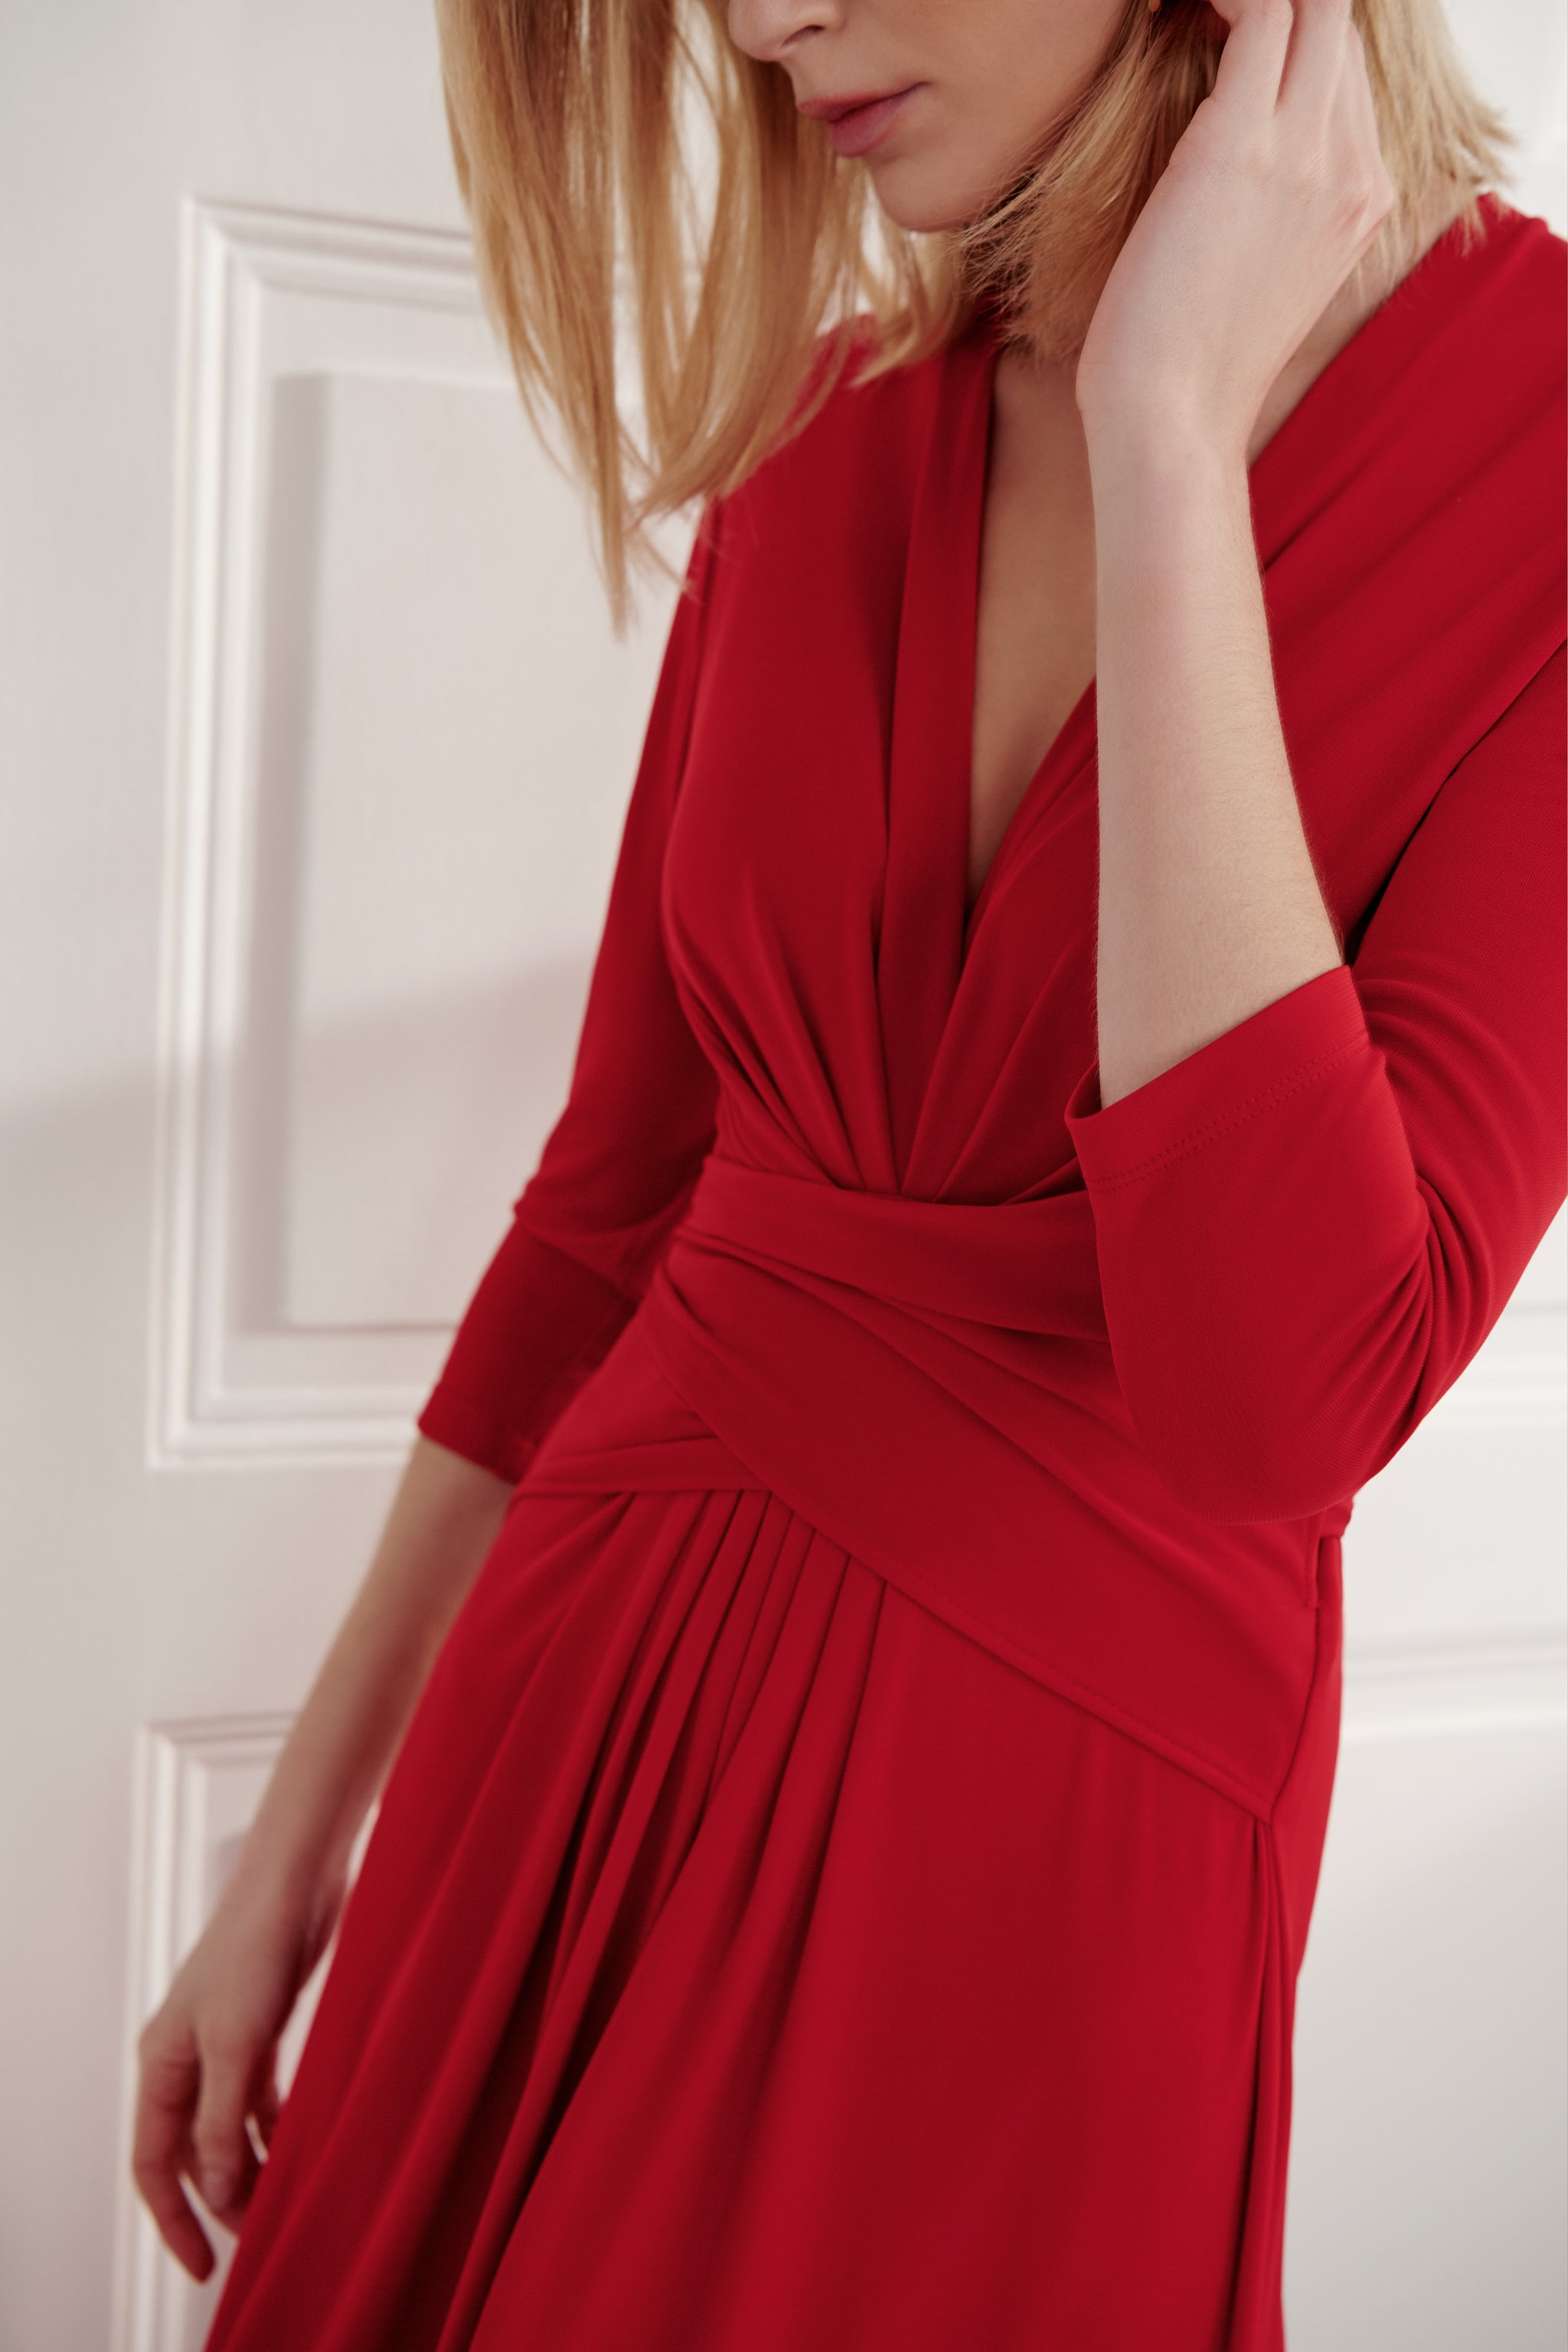 Radley Red Dress